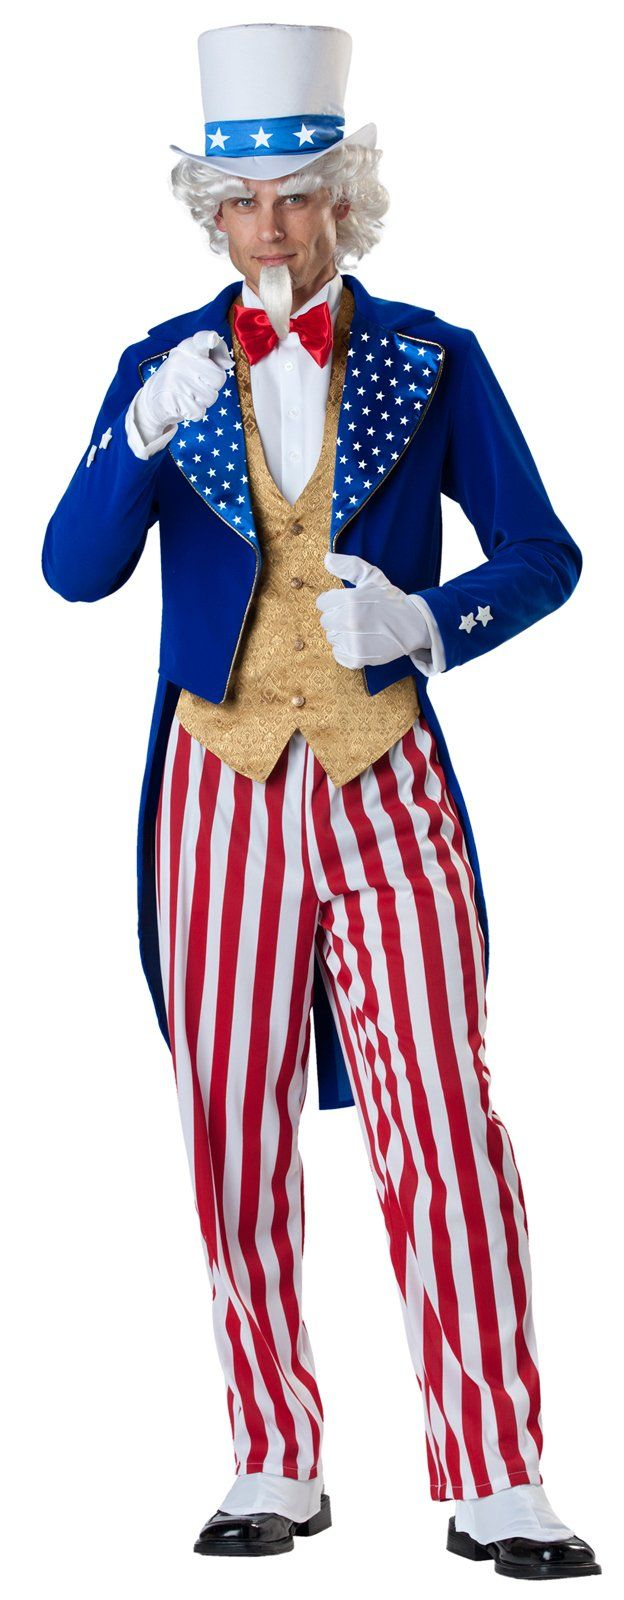 Uncle Sam Elite Collection Adult Costume | Costumes, Outdoor ...